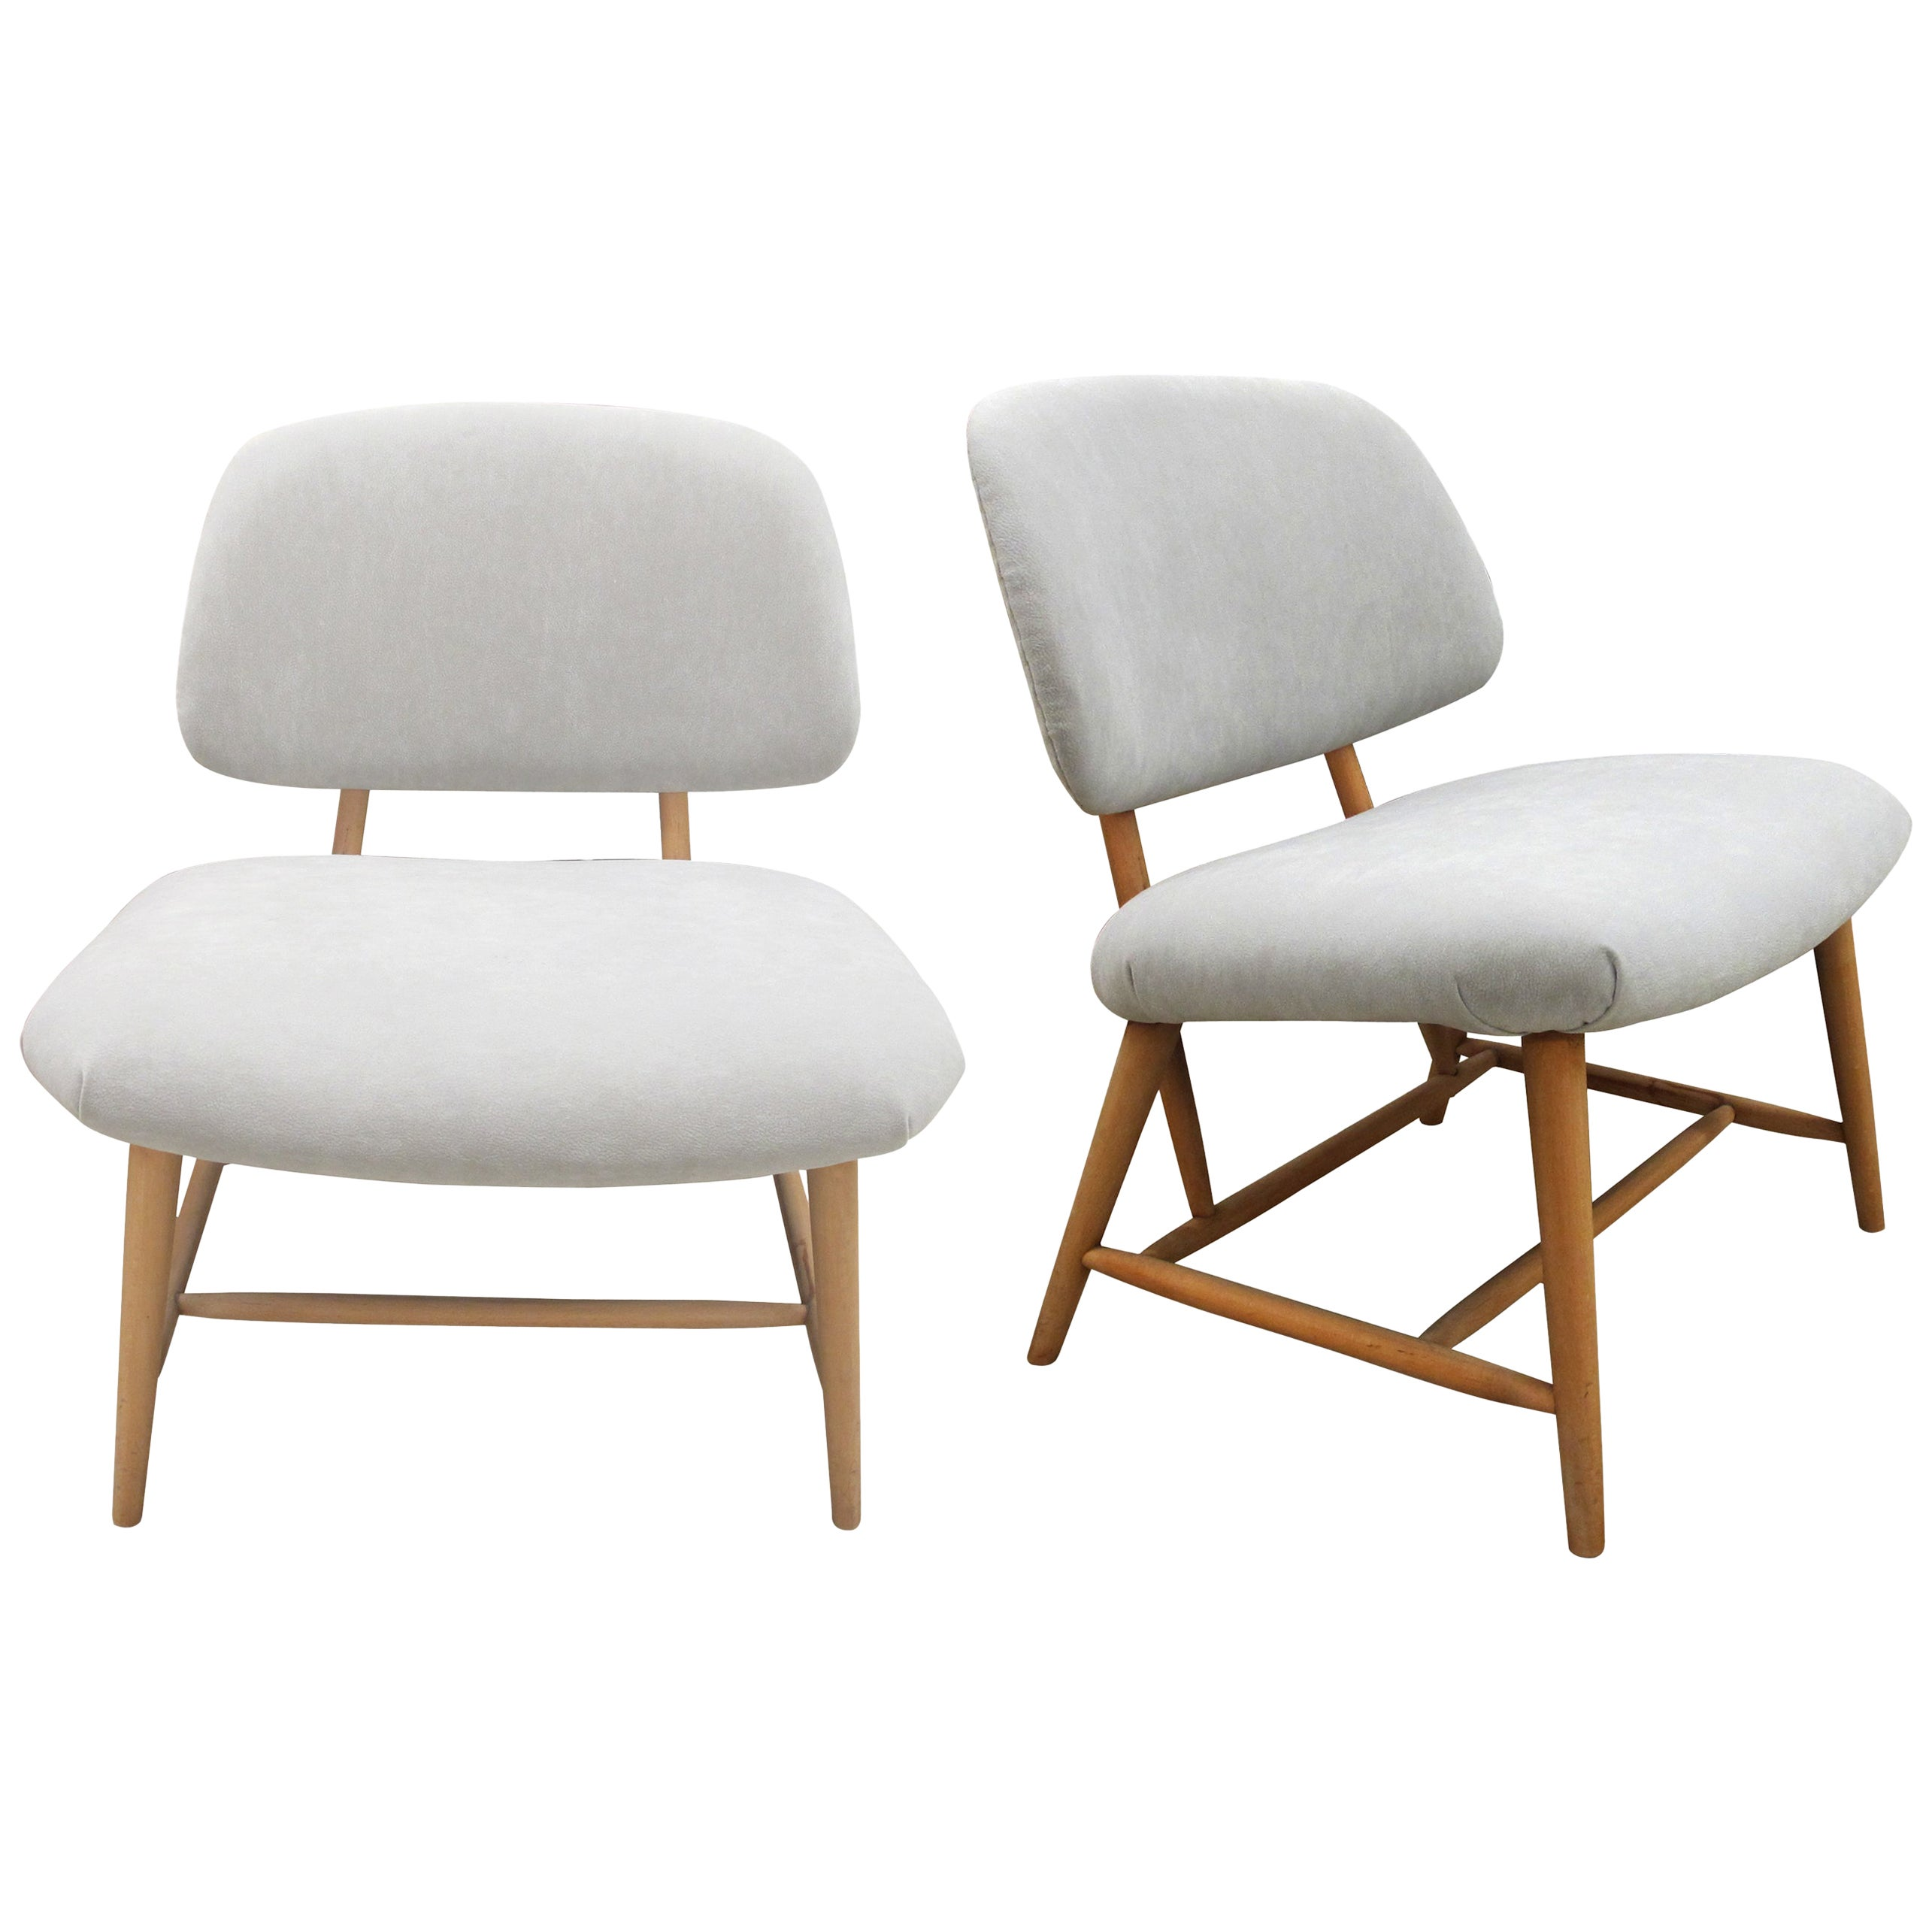 Pair of 1960s Swedish Alf Svensson Occasional Lounge Chairs Newly Reupholstered